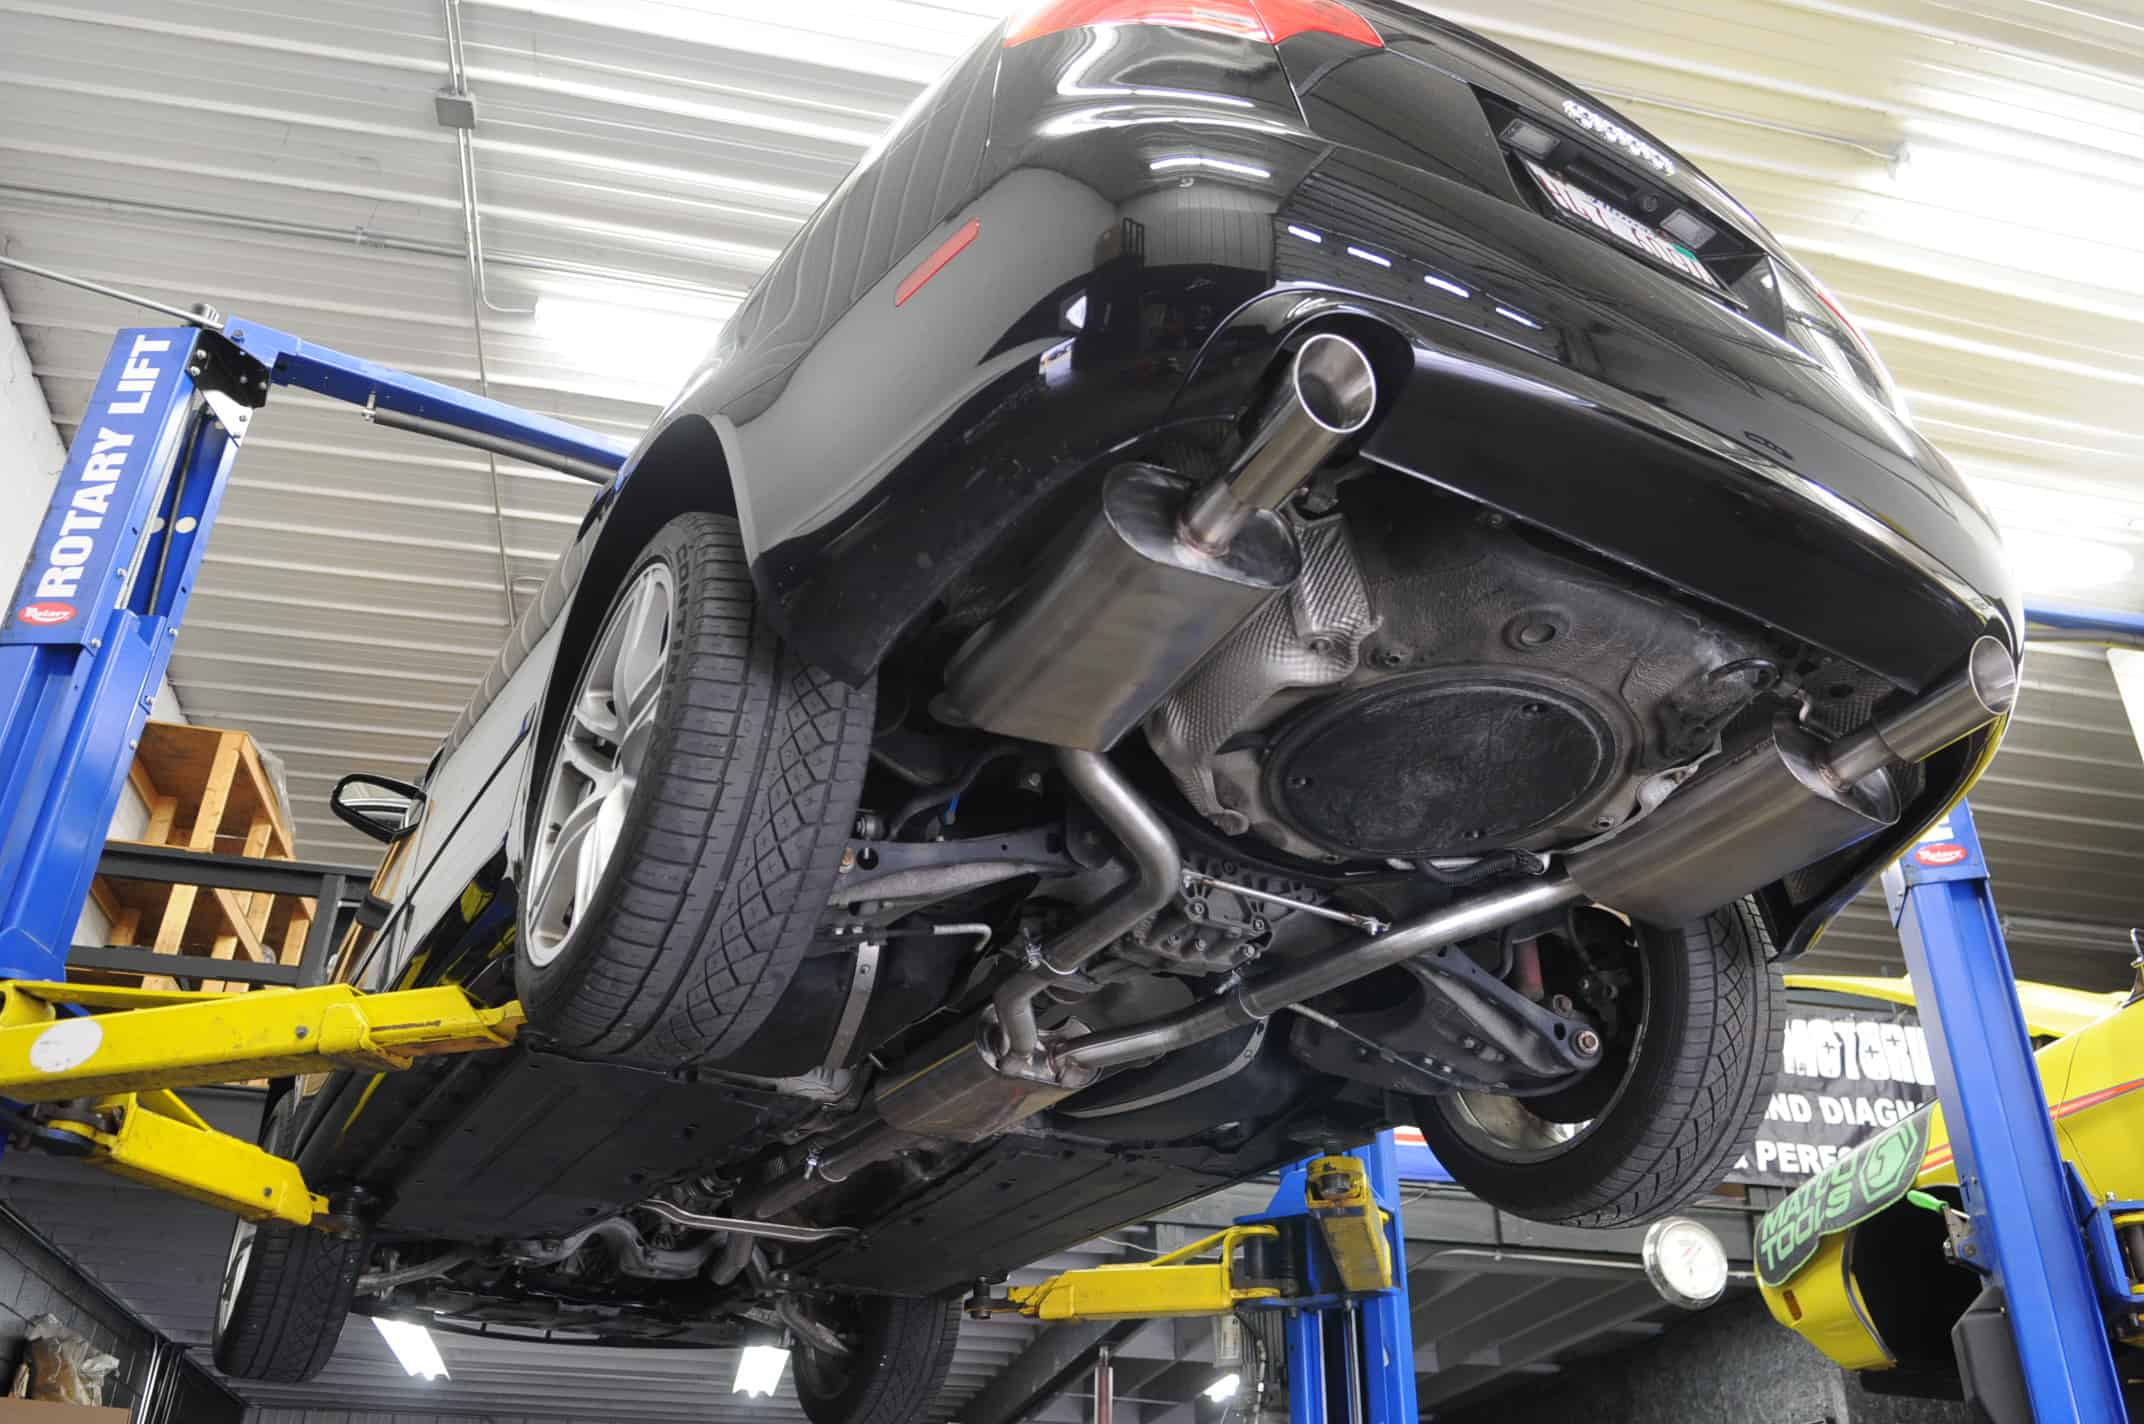 Audi A4 Billy Boat Exhaust Install - Car Repair